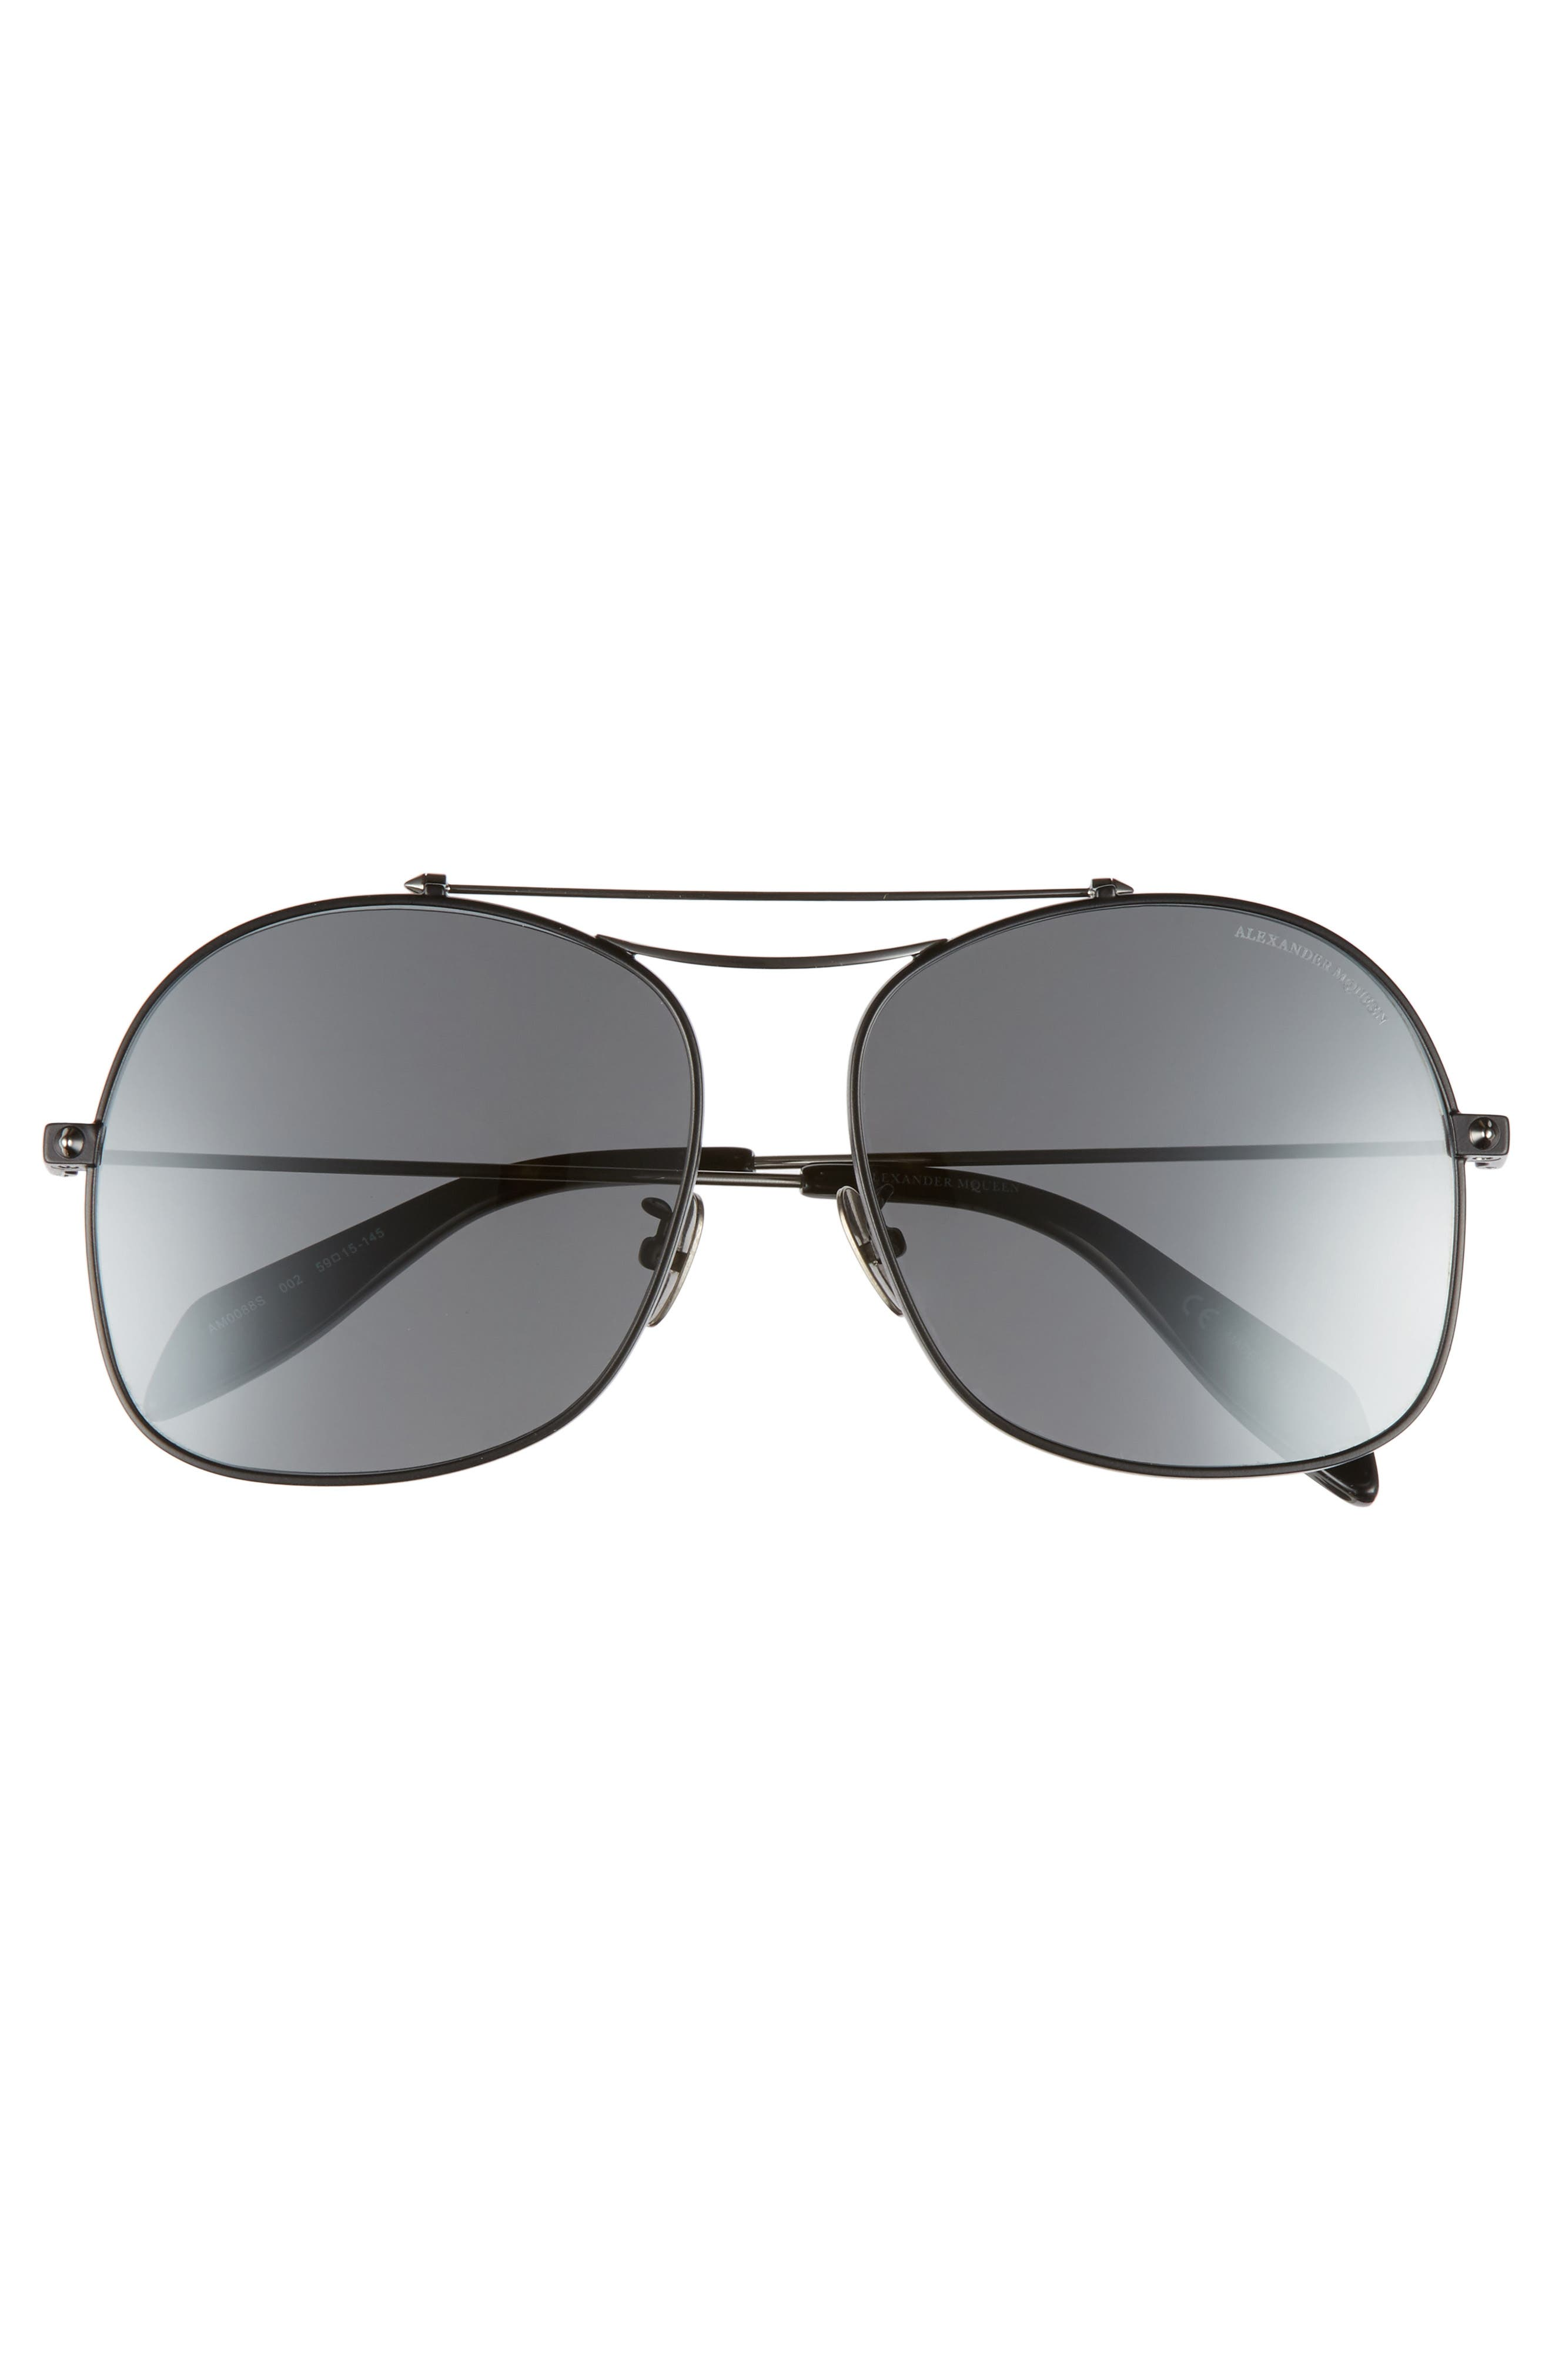 59mm Aviator Sunglasses,                             Alternate thumbnail 3, color,                             Black